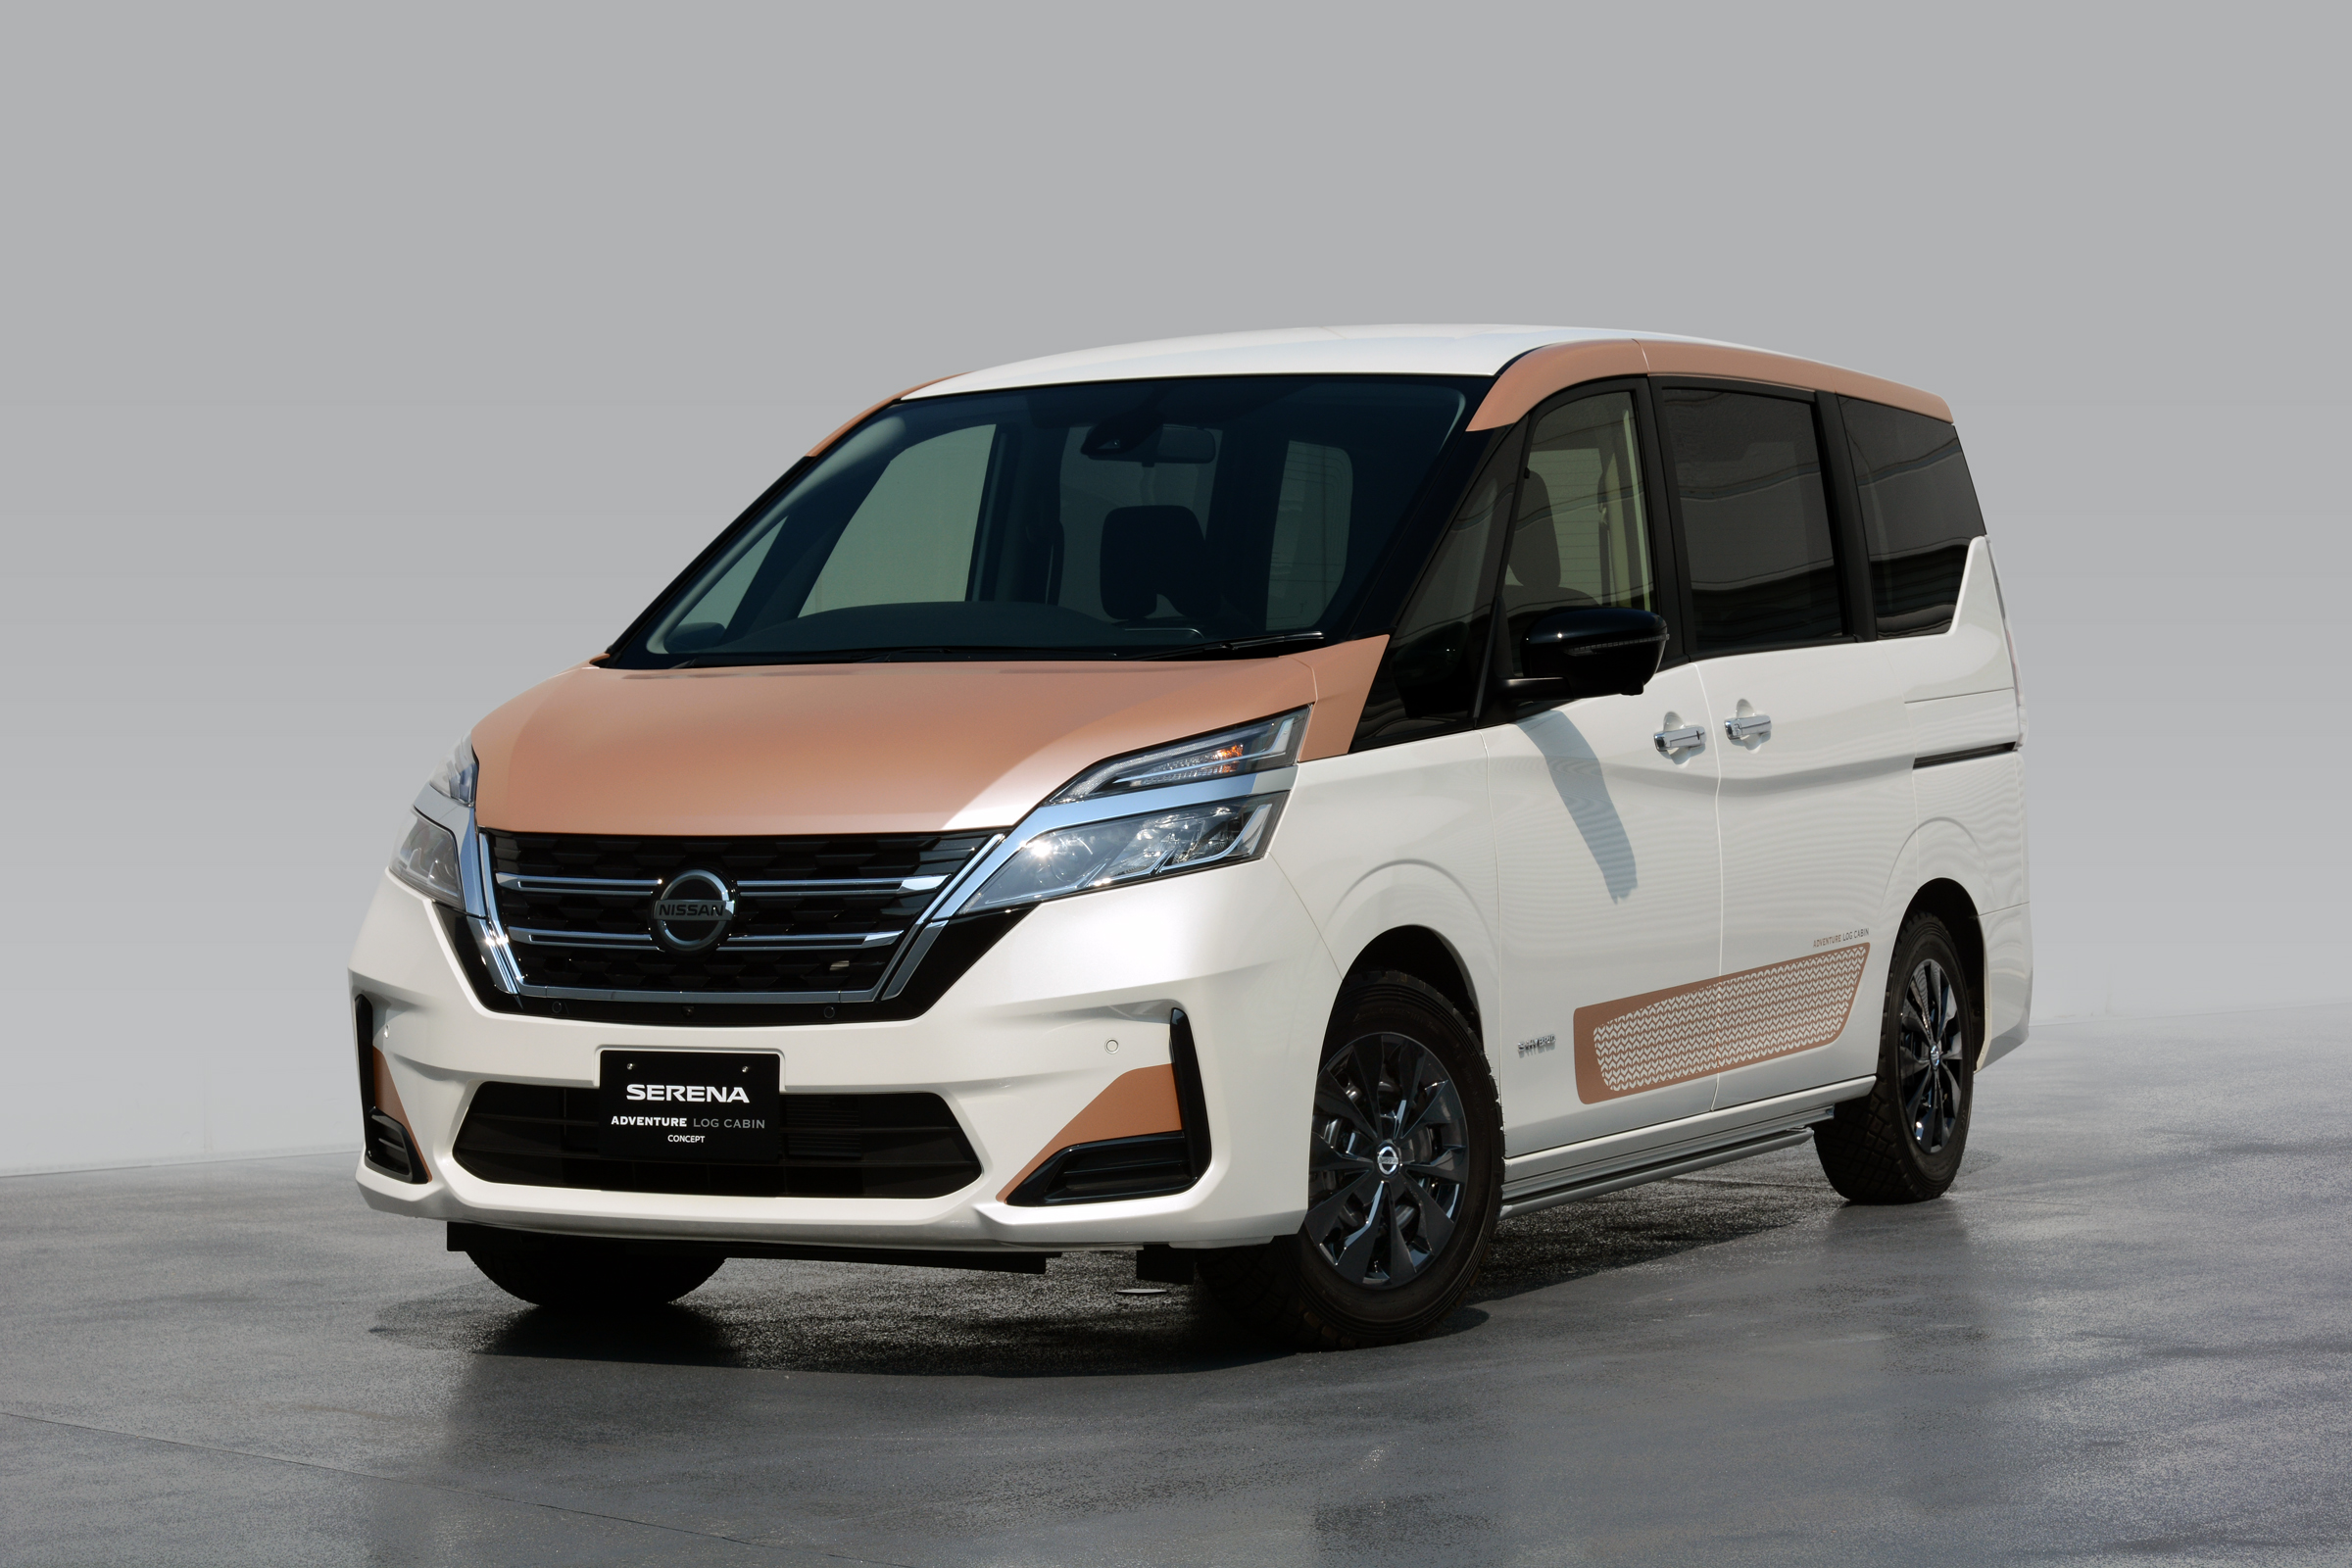 Autech Japan is an internal subdivision of Nissan that deals with customization, tuning and accessorizing of the domestically sold Nissan vehicles. This Nissan Serena Adventure Log Cabin is their latest project, and it features a bed for two.